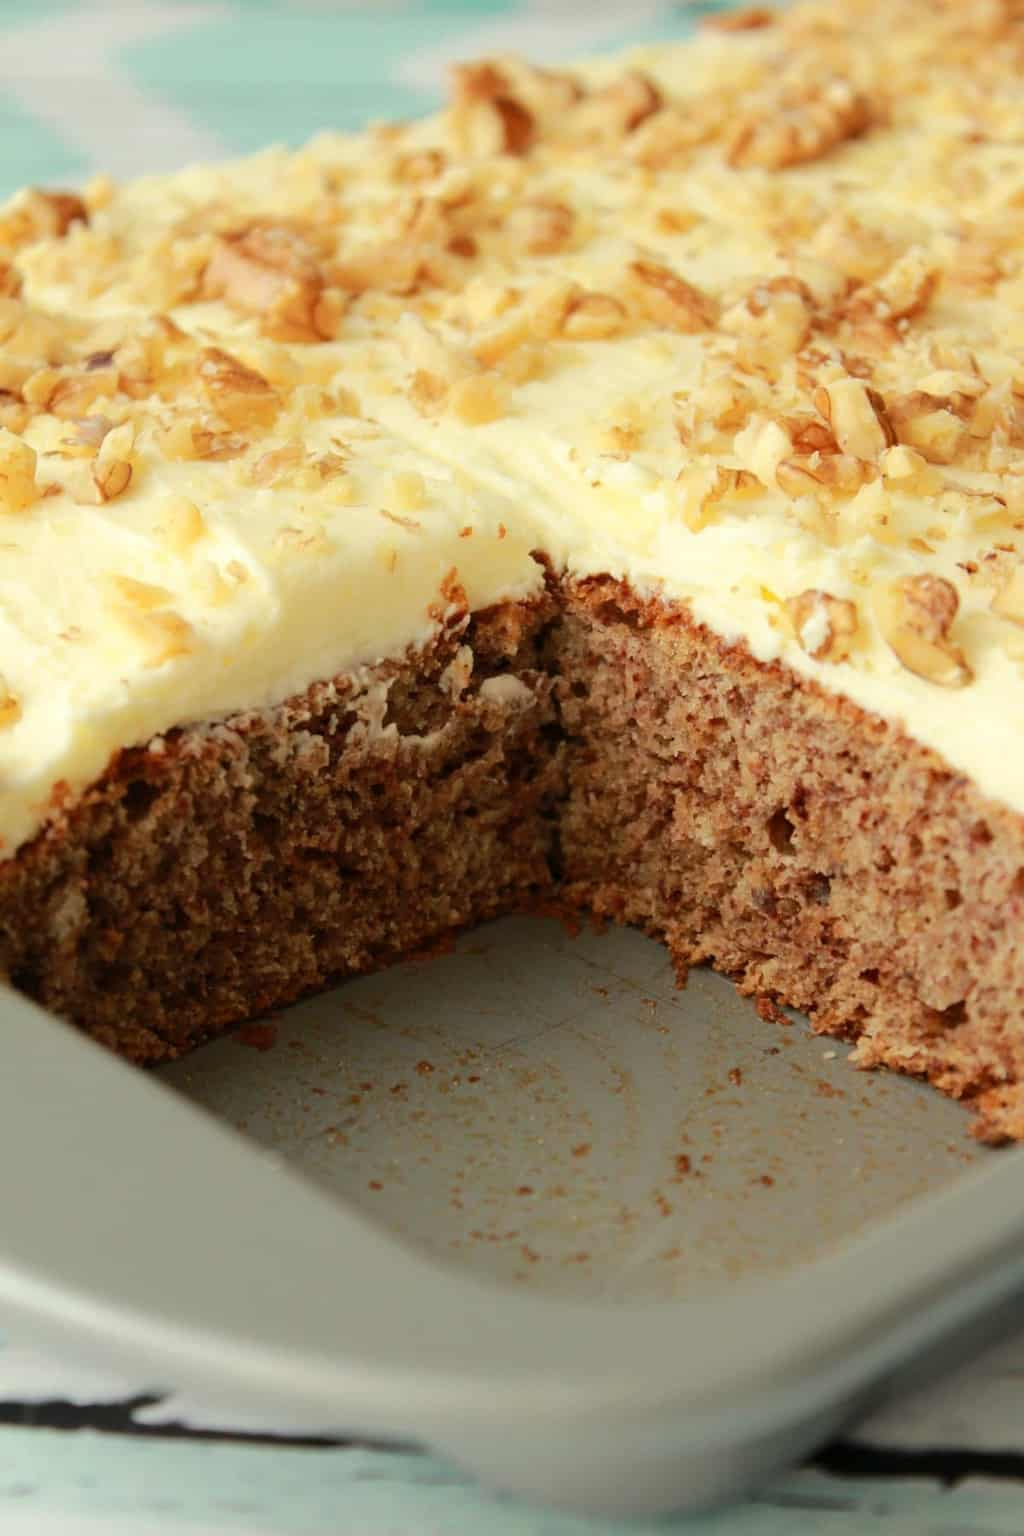 Moist and Delicious Vegan Banana Cake with Lemon Frosting and crushed walnuts. Simple recipe with a perfect result! #vegan #lovingitvegan #bananacake #dessert